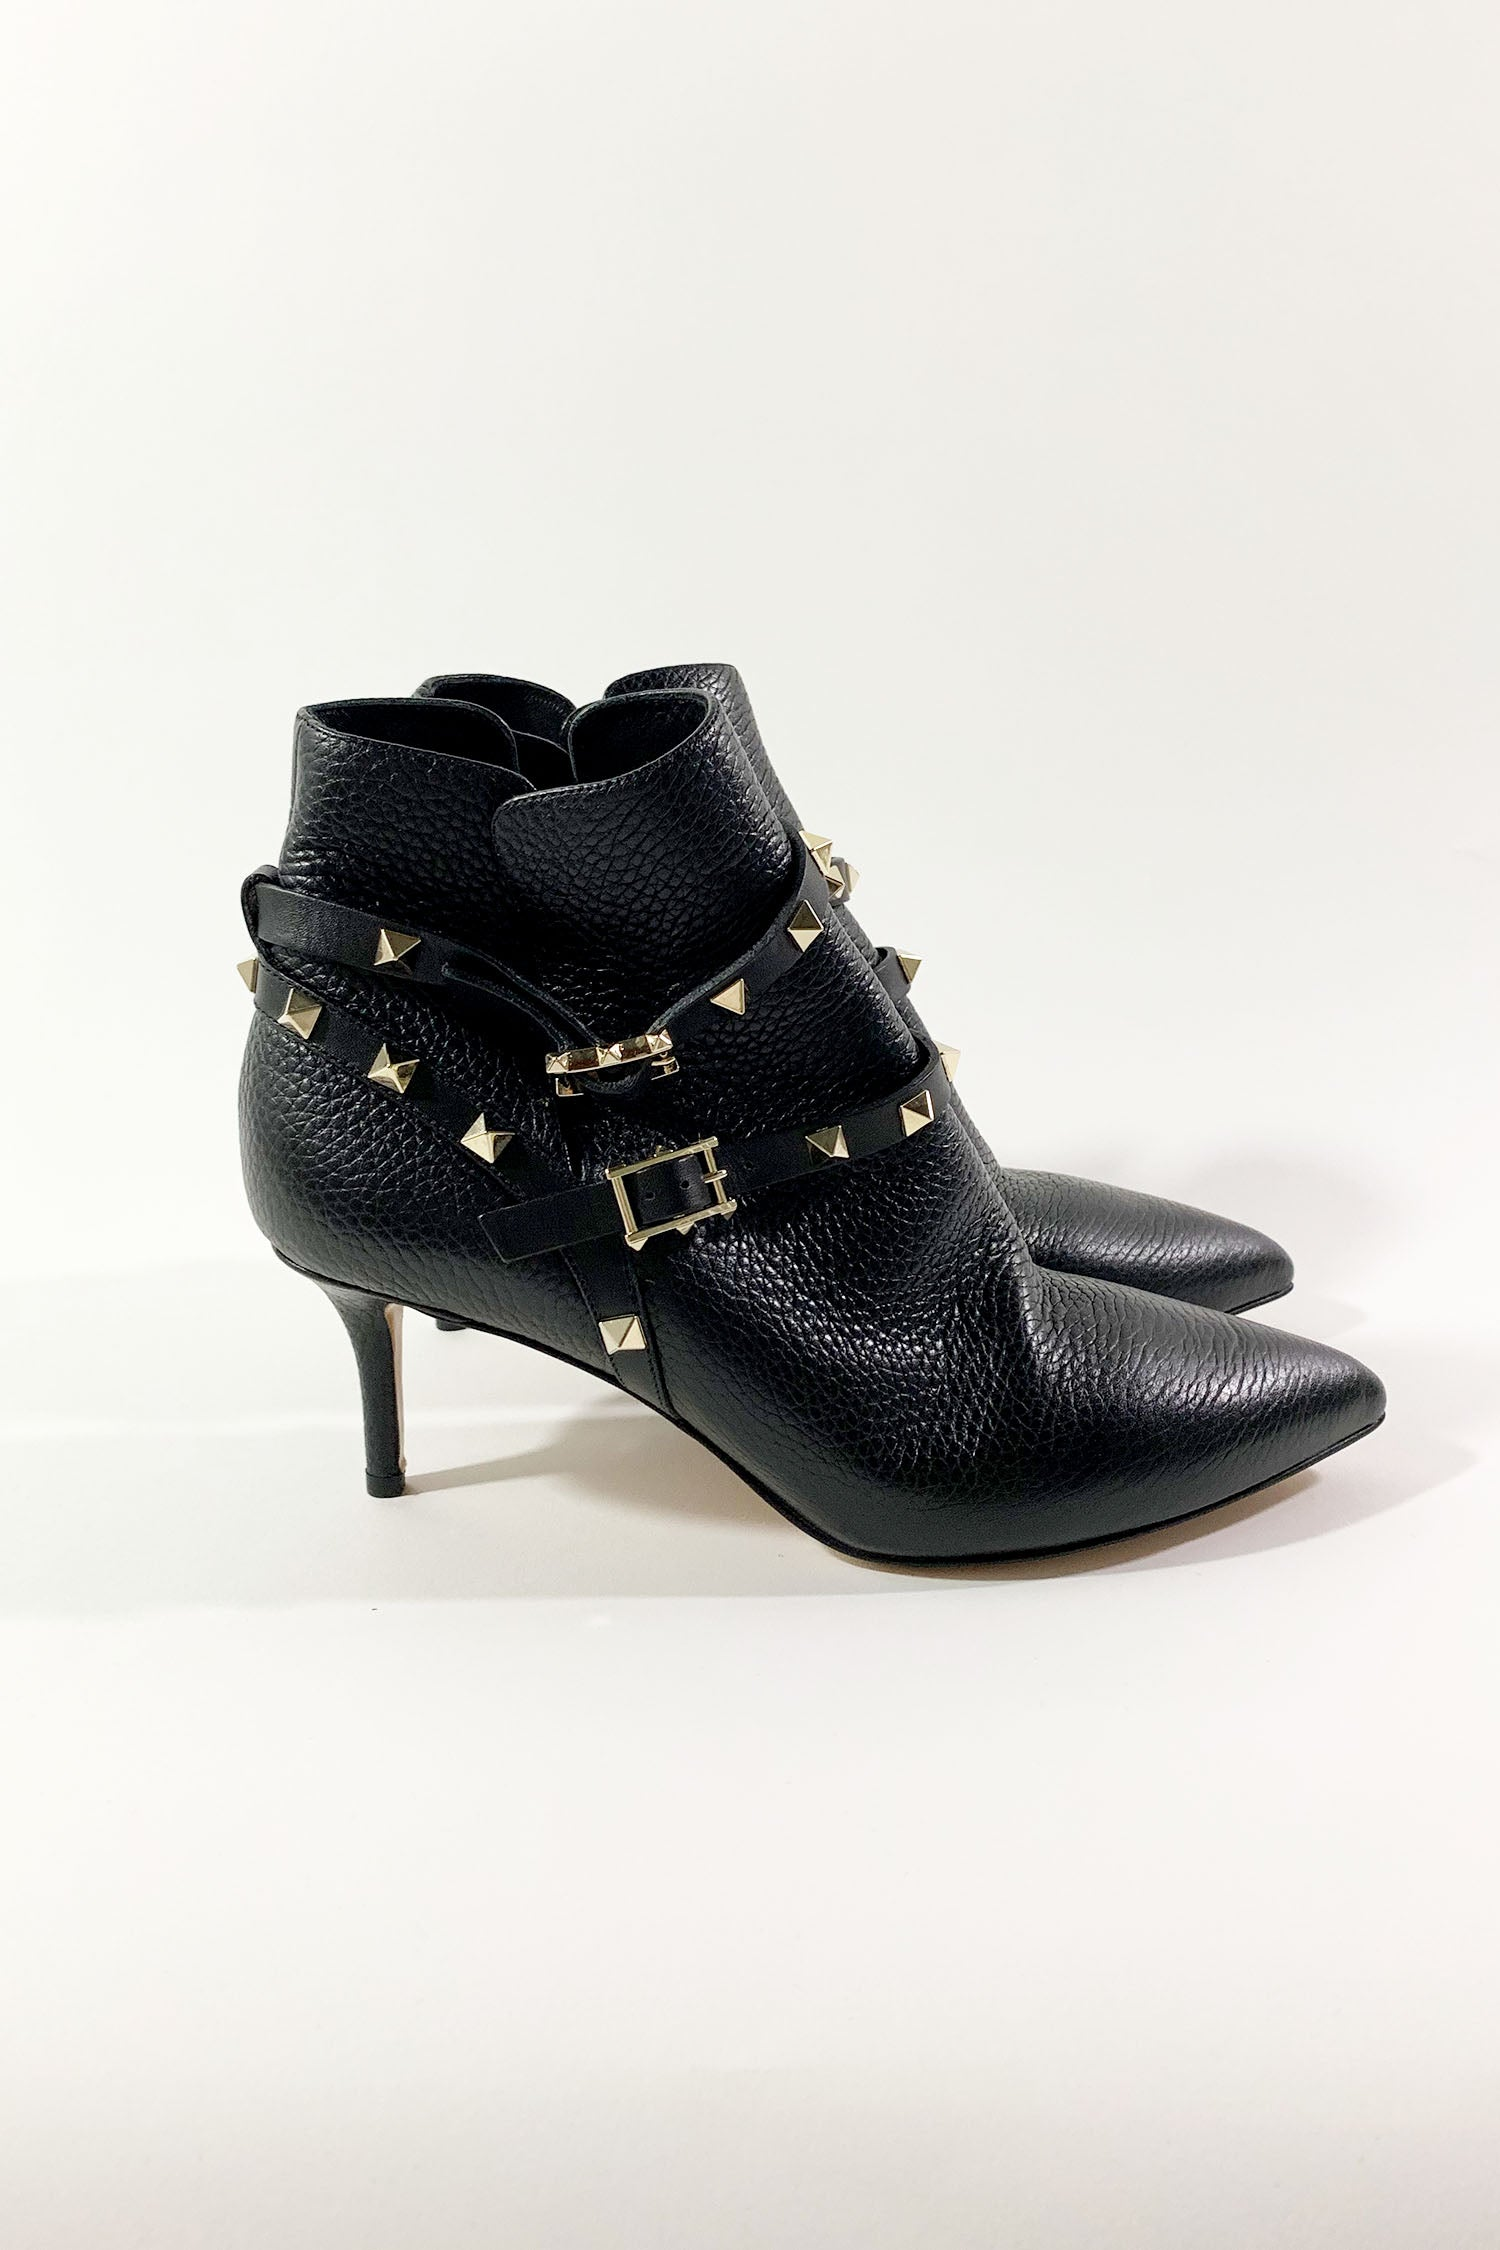 Valentino Rockstud Ankle Boots Sz 38